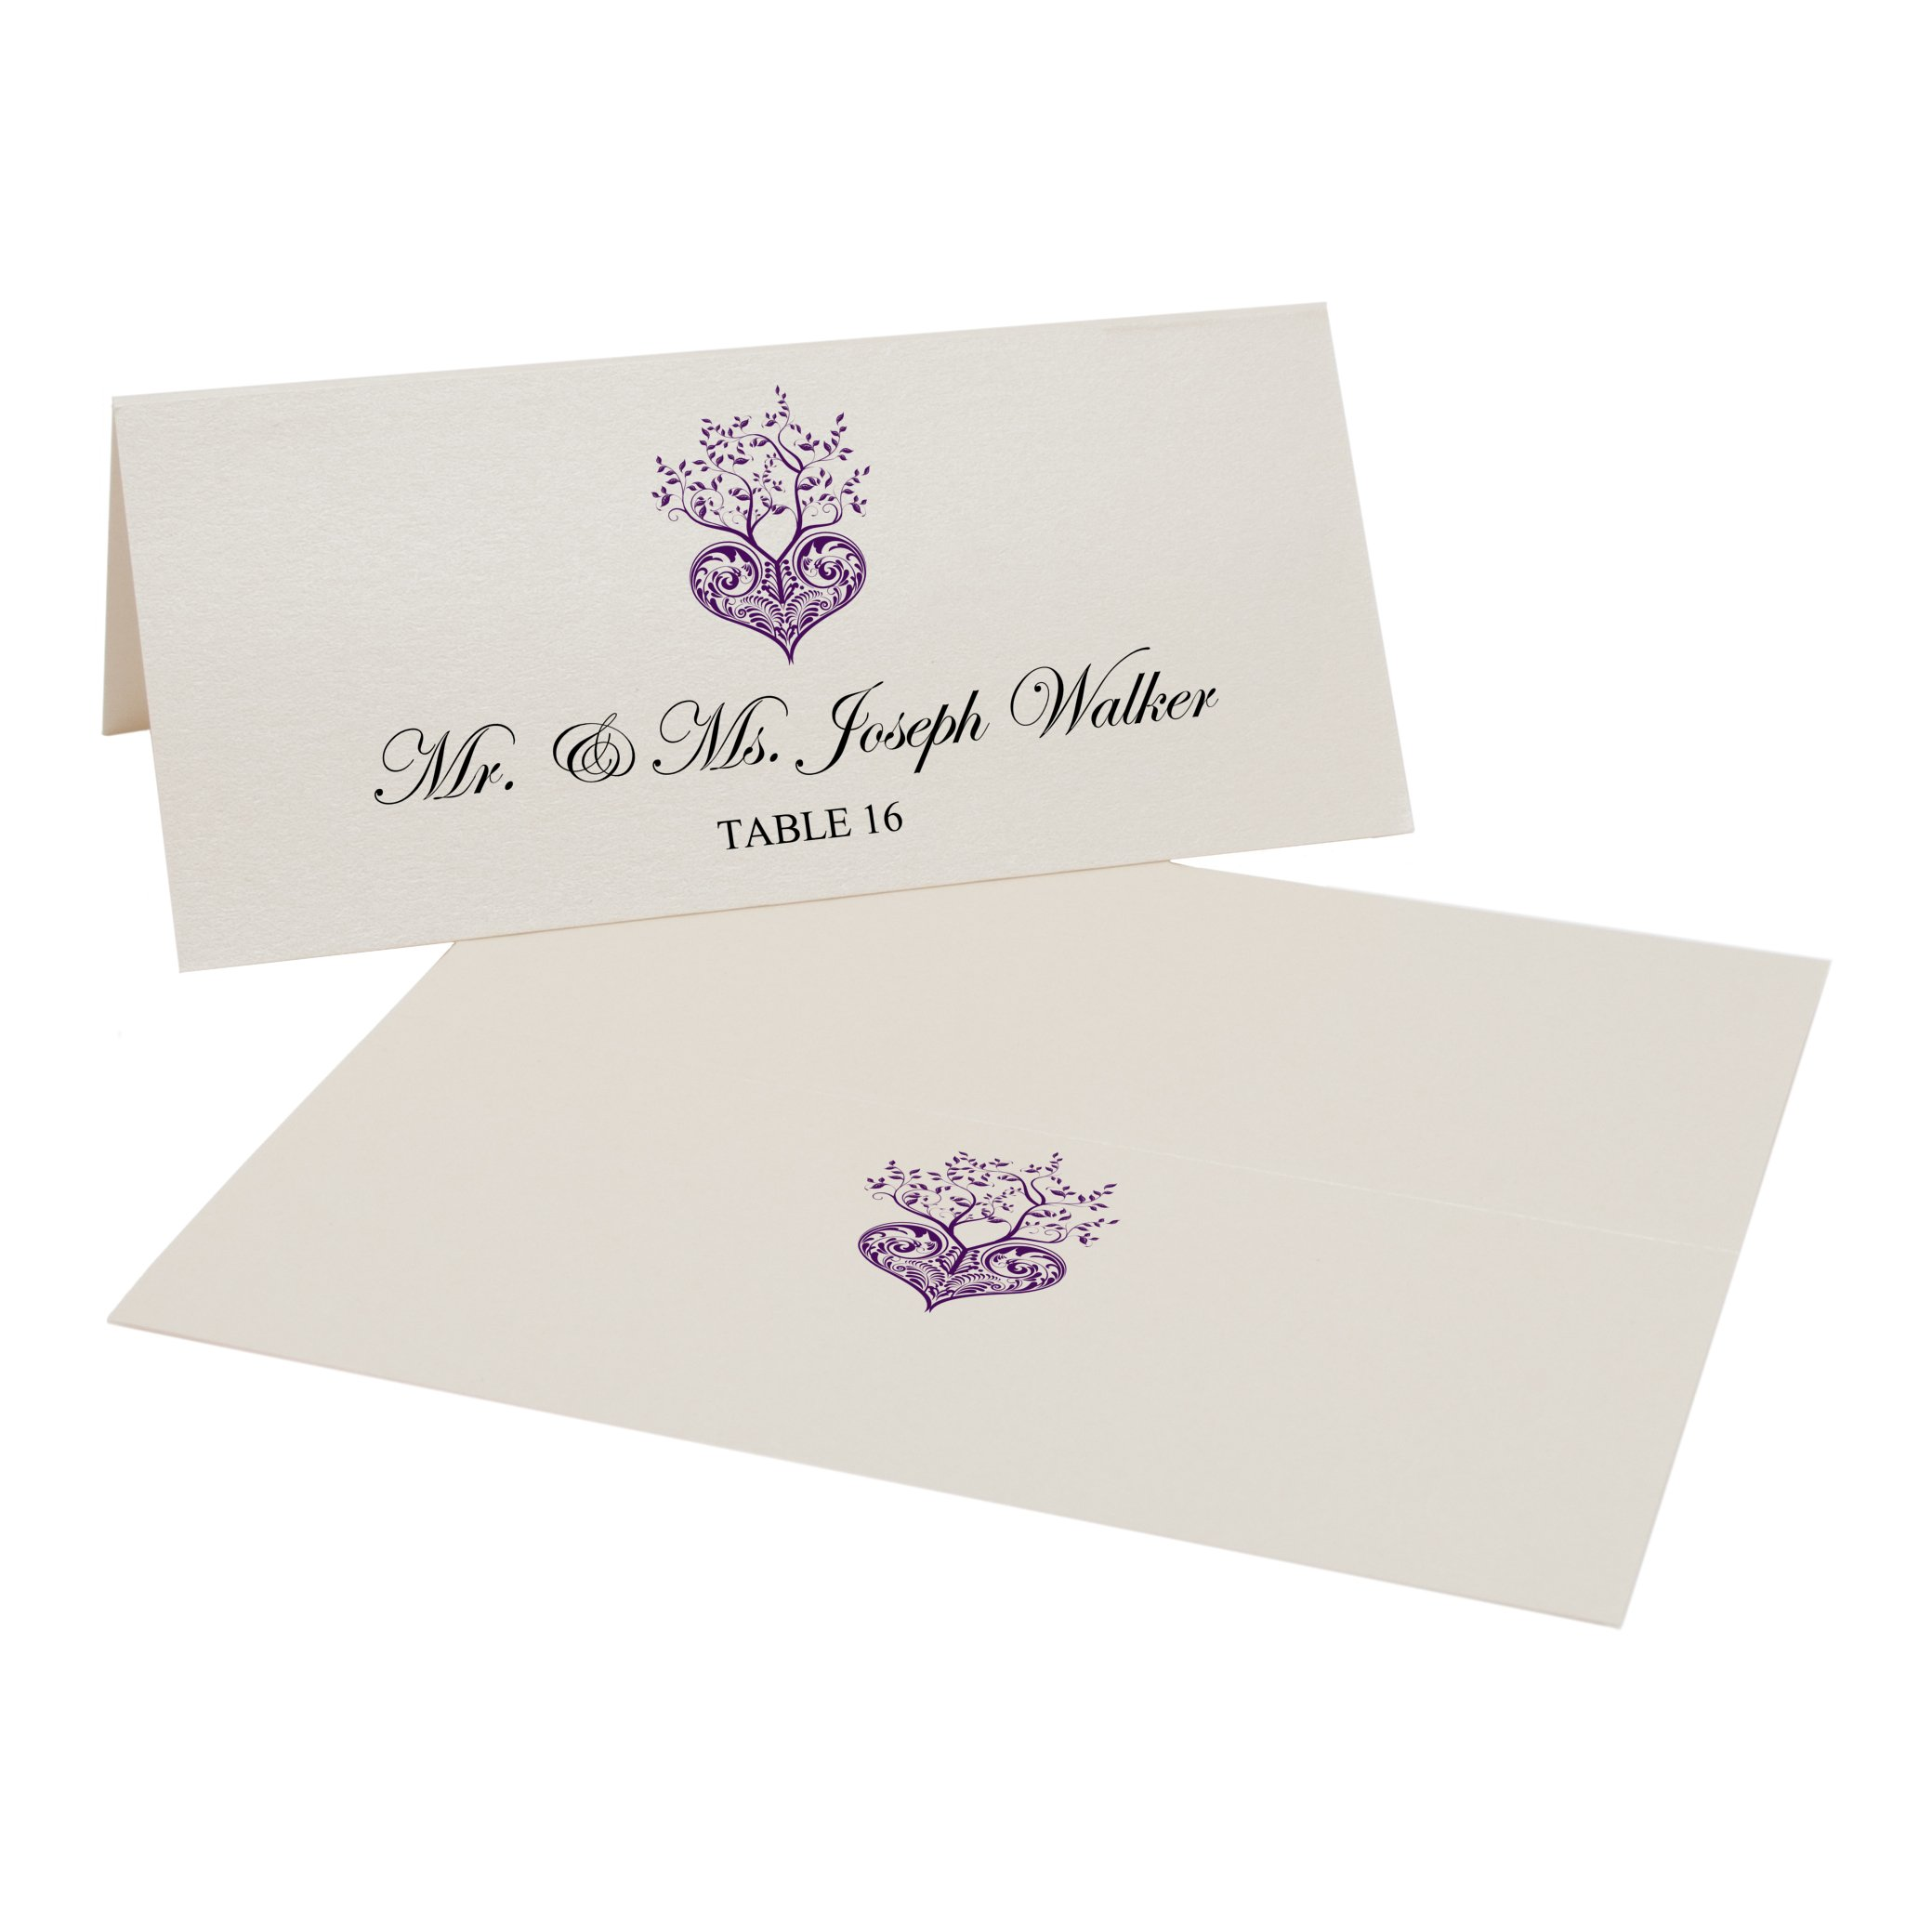 Tree of Life Heart Easy Print Place Cards, Champagne, Eggplant, Set of 500 (125 Sheets) by Documents and Designs